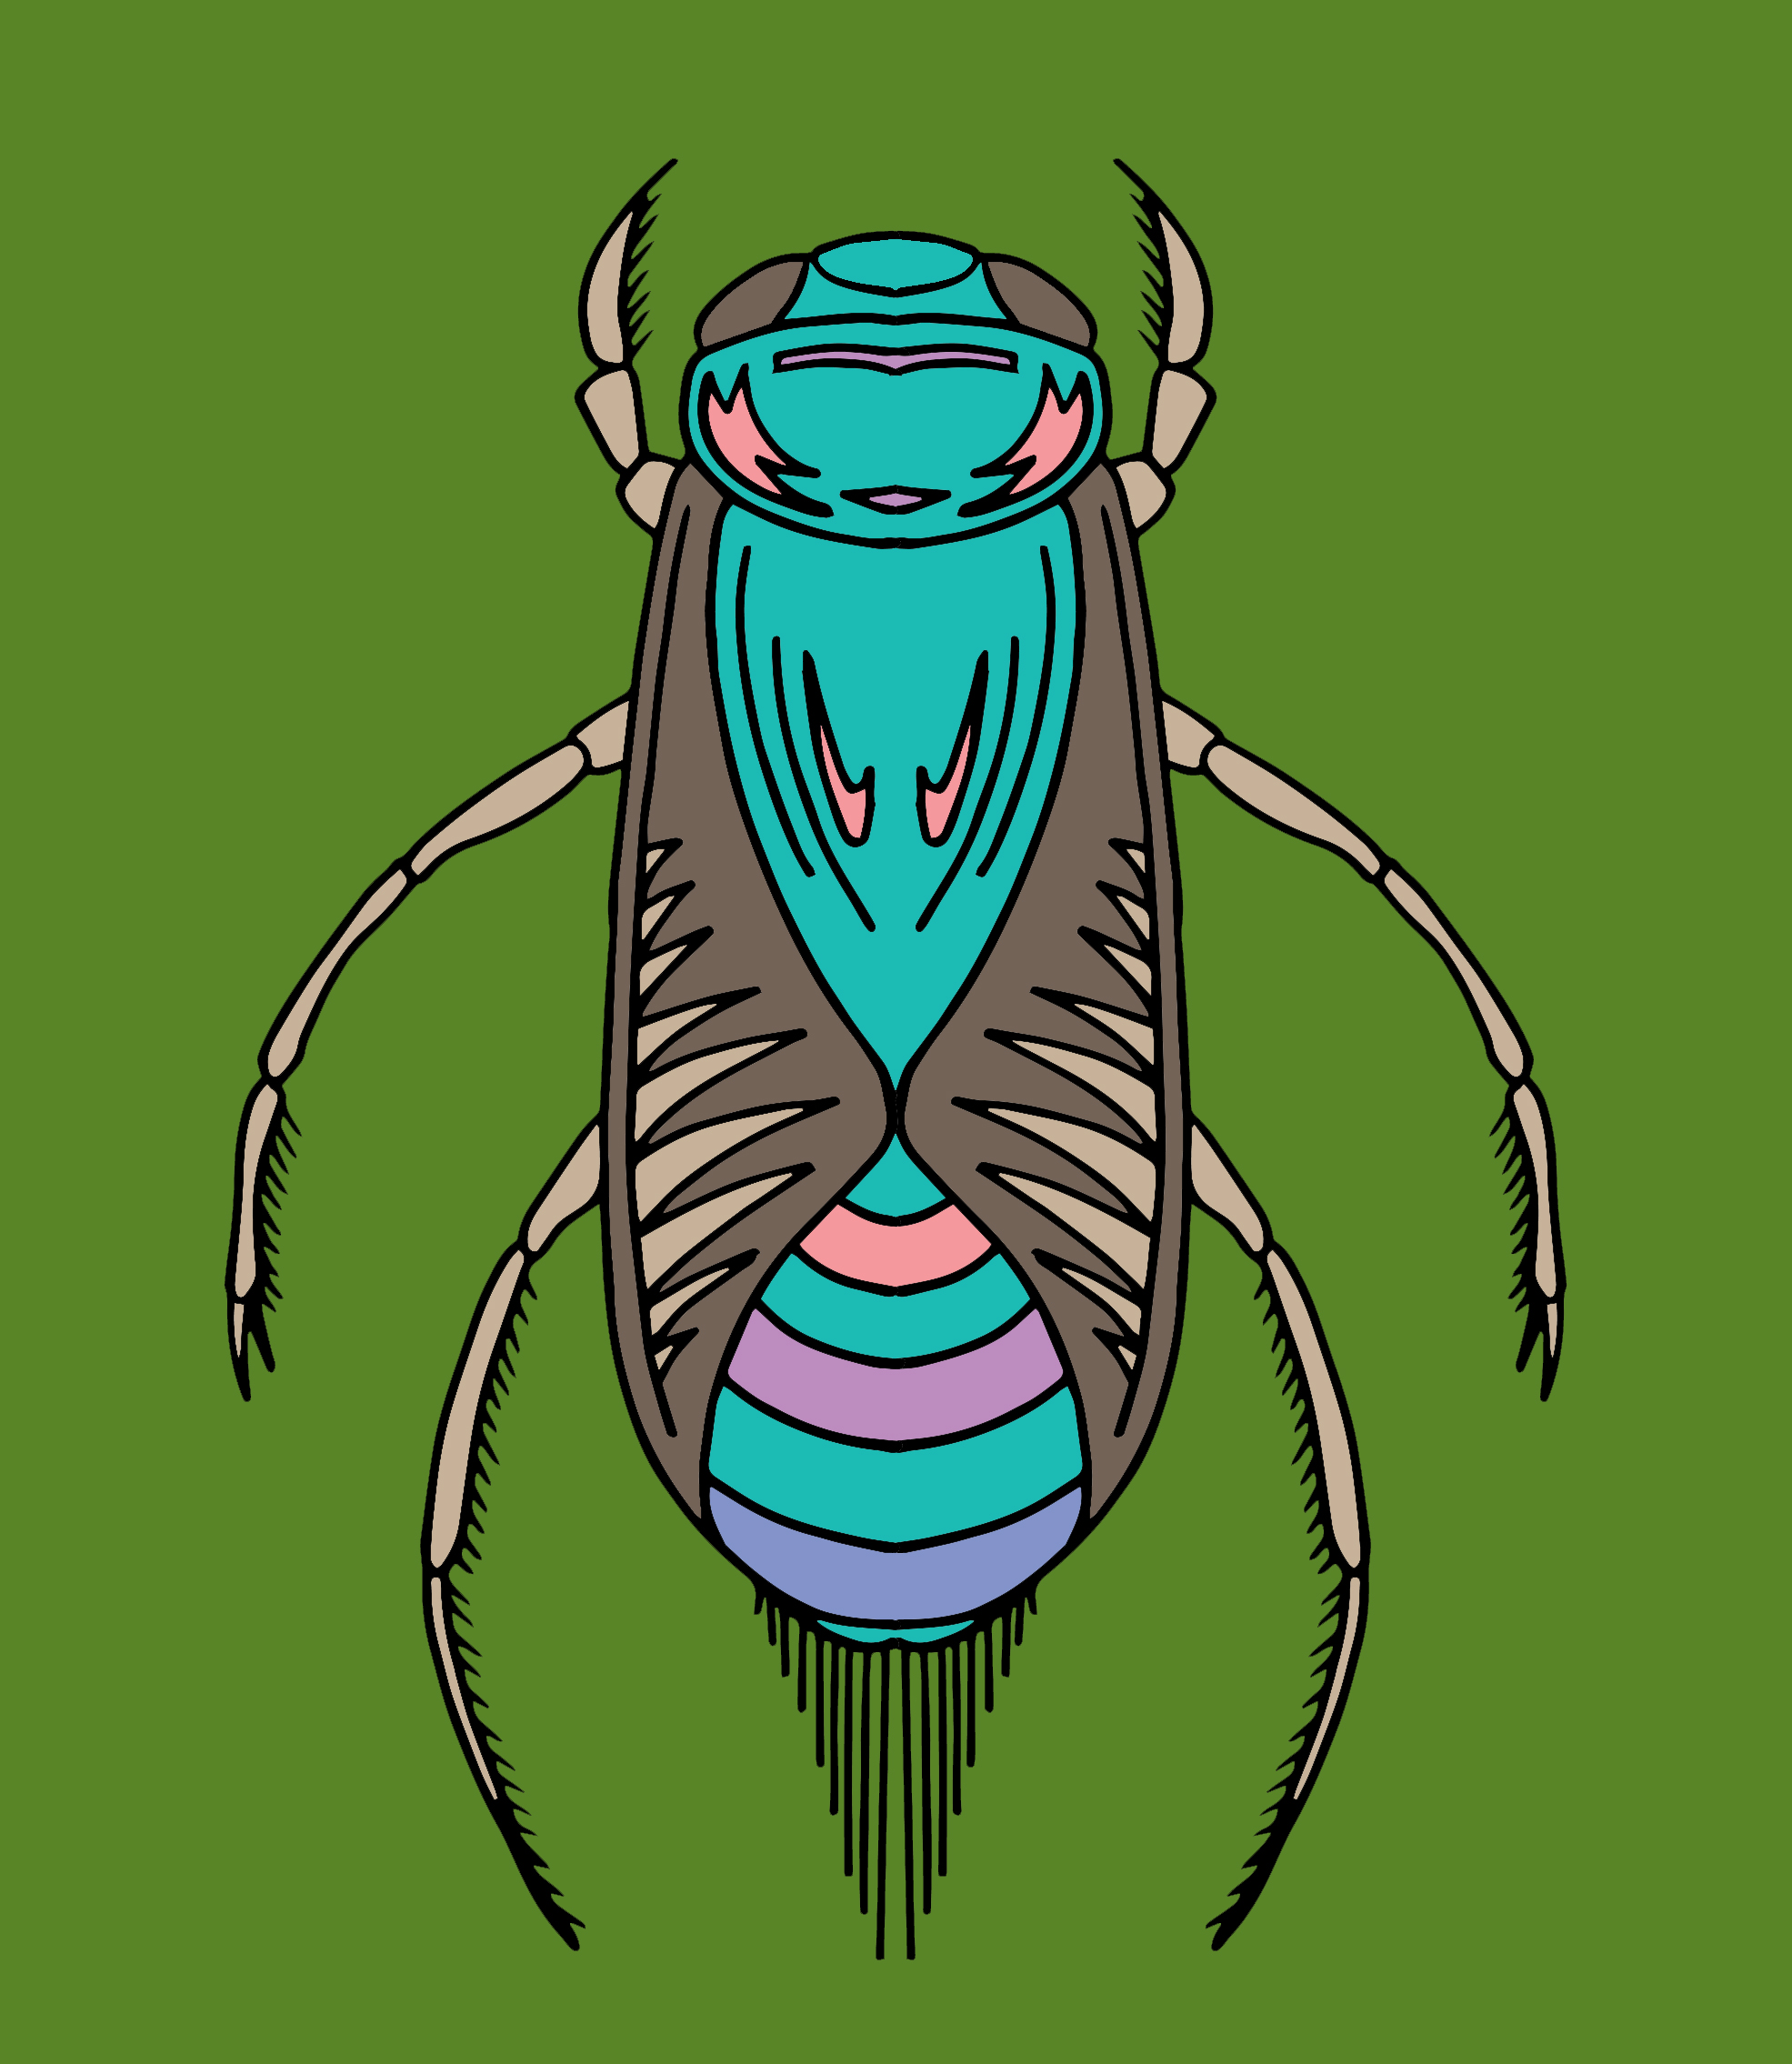 080719 Water Bug Color 1.jpg